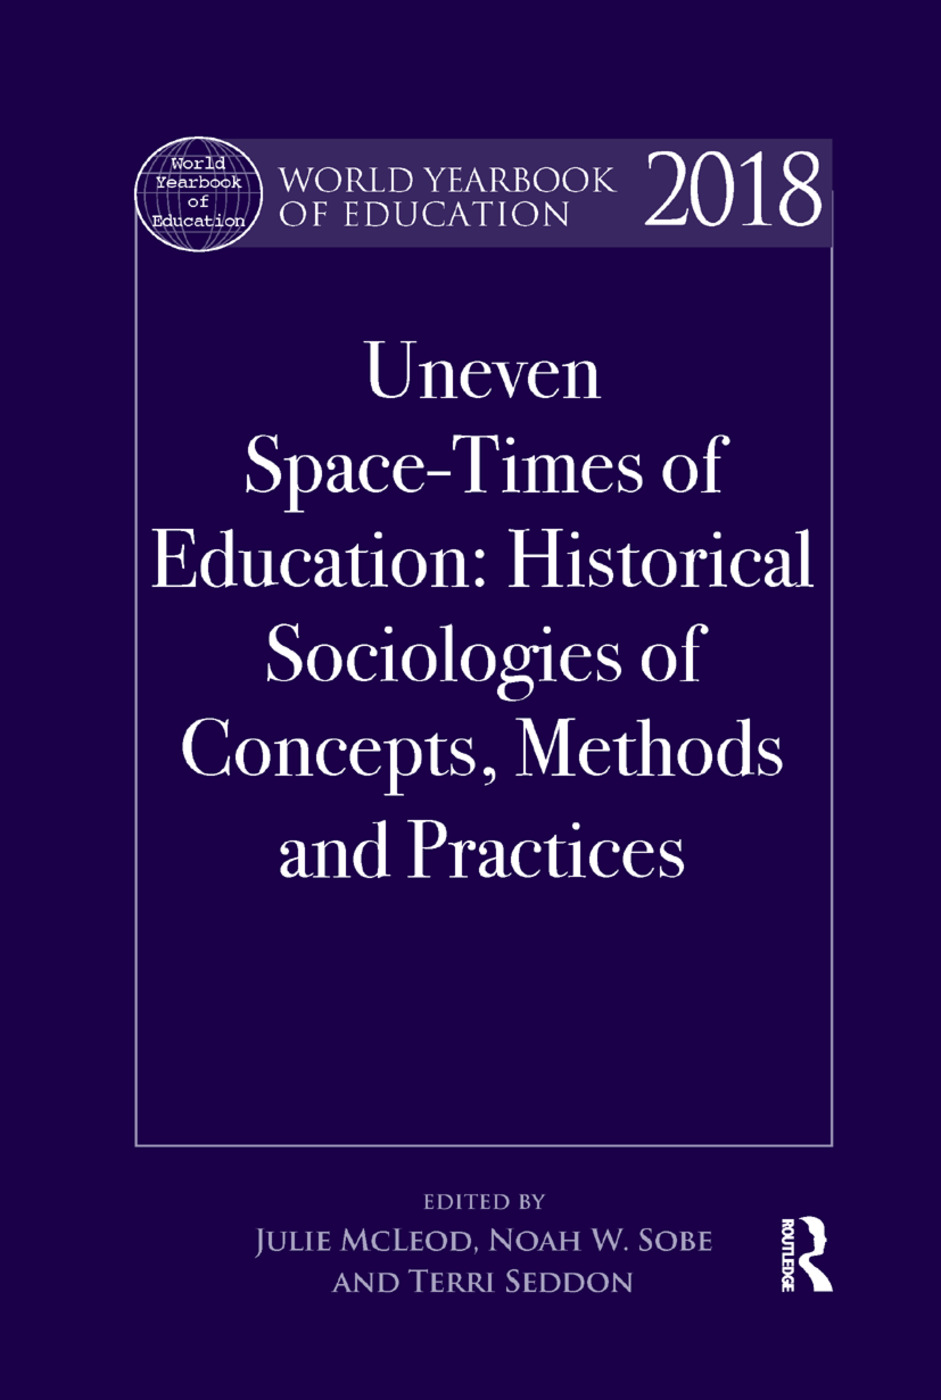 World Yearbook of Education 2018: Uneven Space-Times of Education: Historical Sociologies of Concepts, Methods and Practices book cover